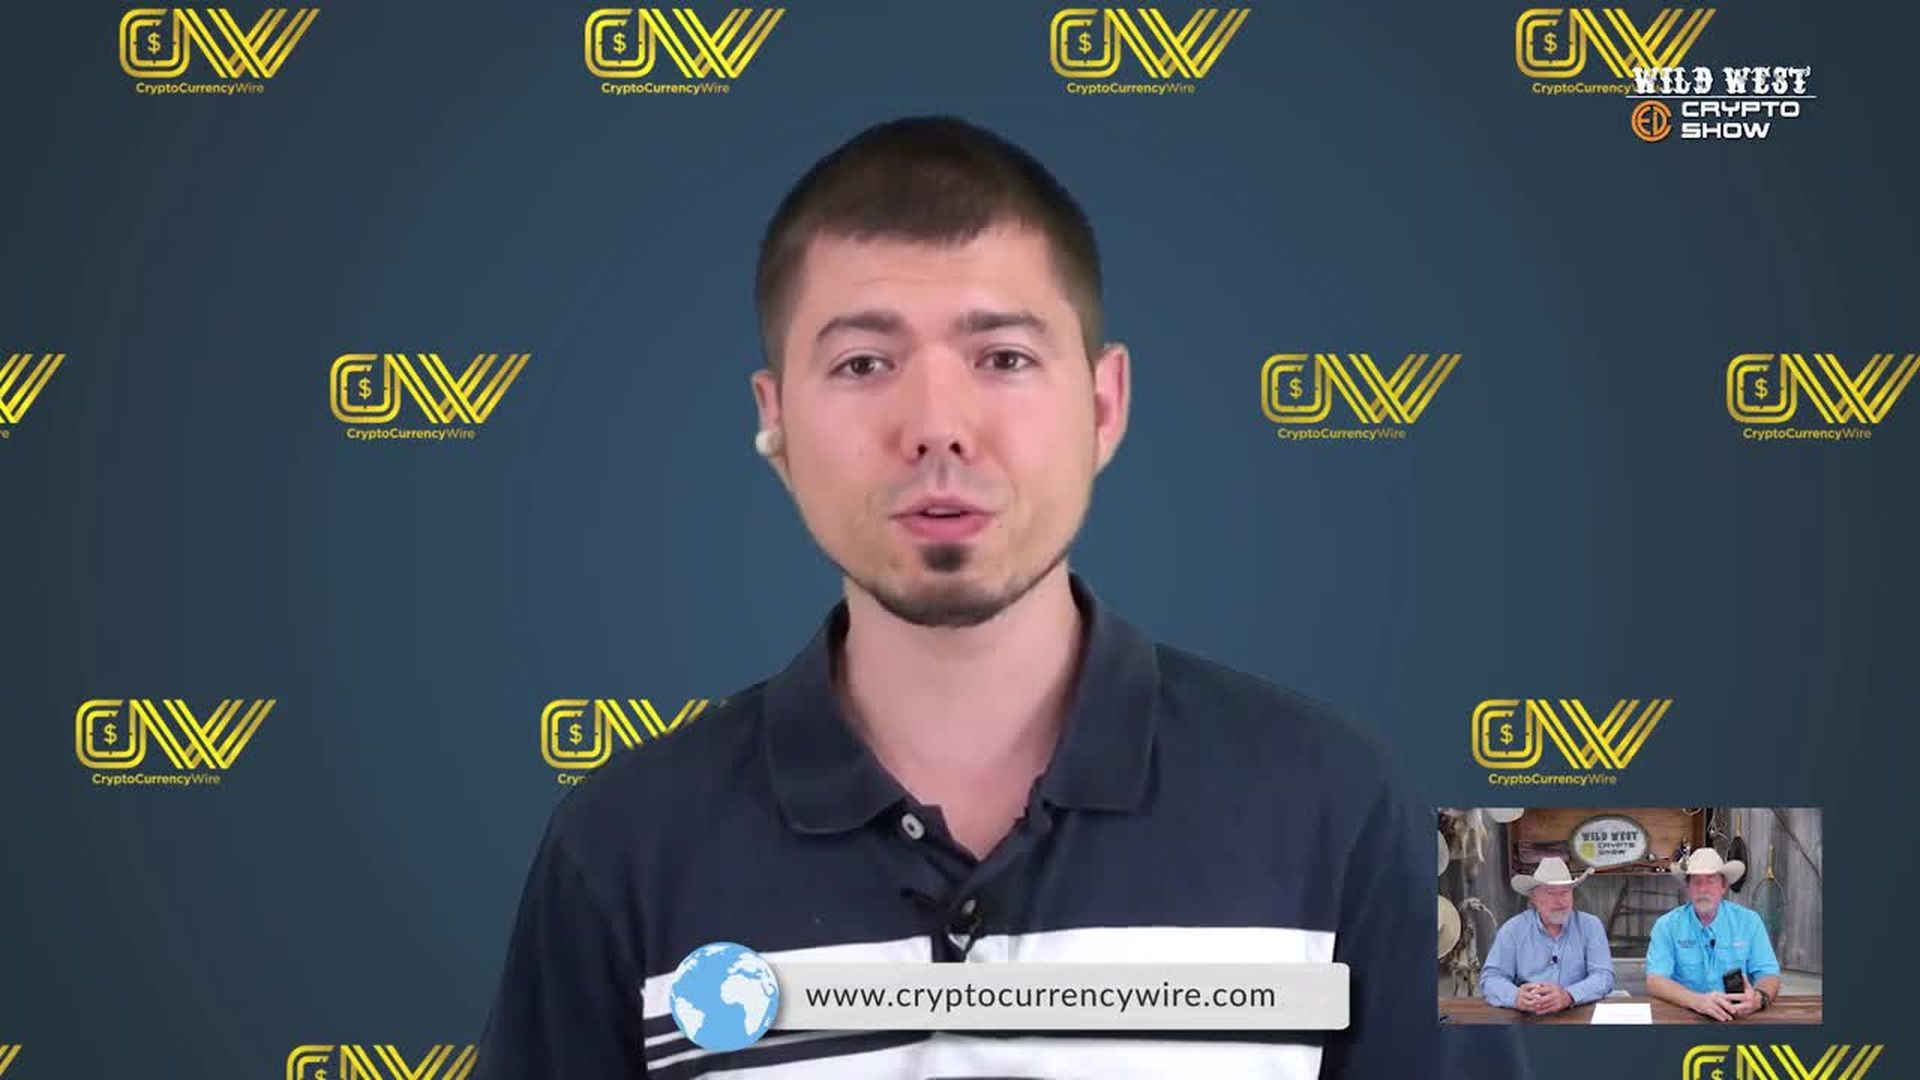 CryptoCurrencyWire Videos-The Wild West Crypto Show Hosts Congressional Hopeful Darren Dione Aquino | CryptoCurrencyWire on The Wild West Crypto Show | Episode 114